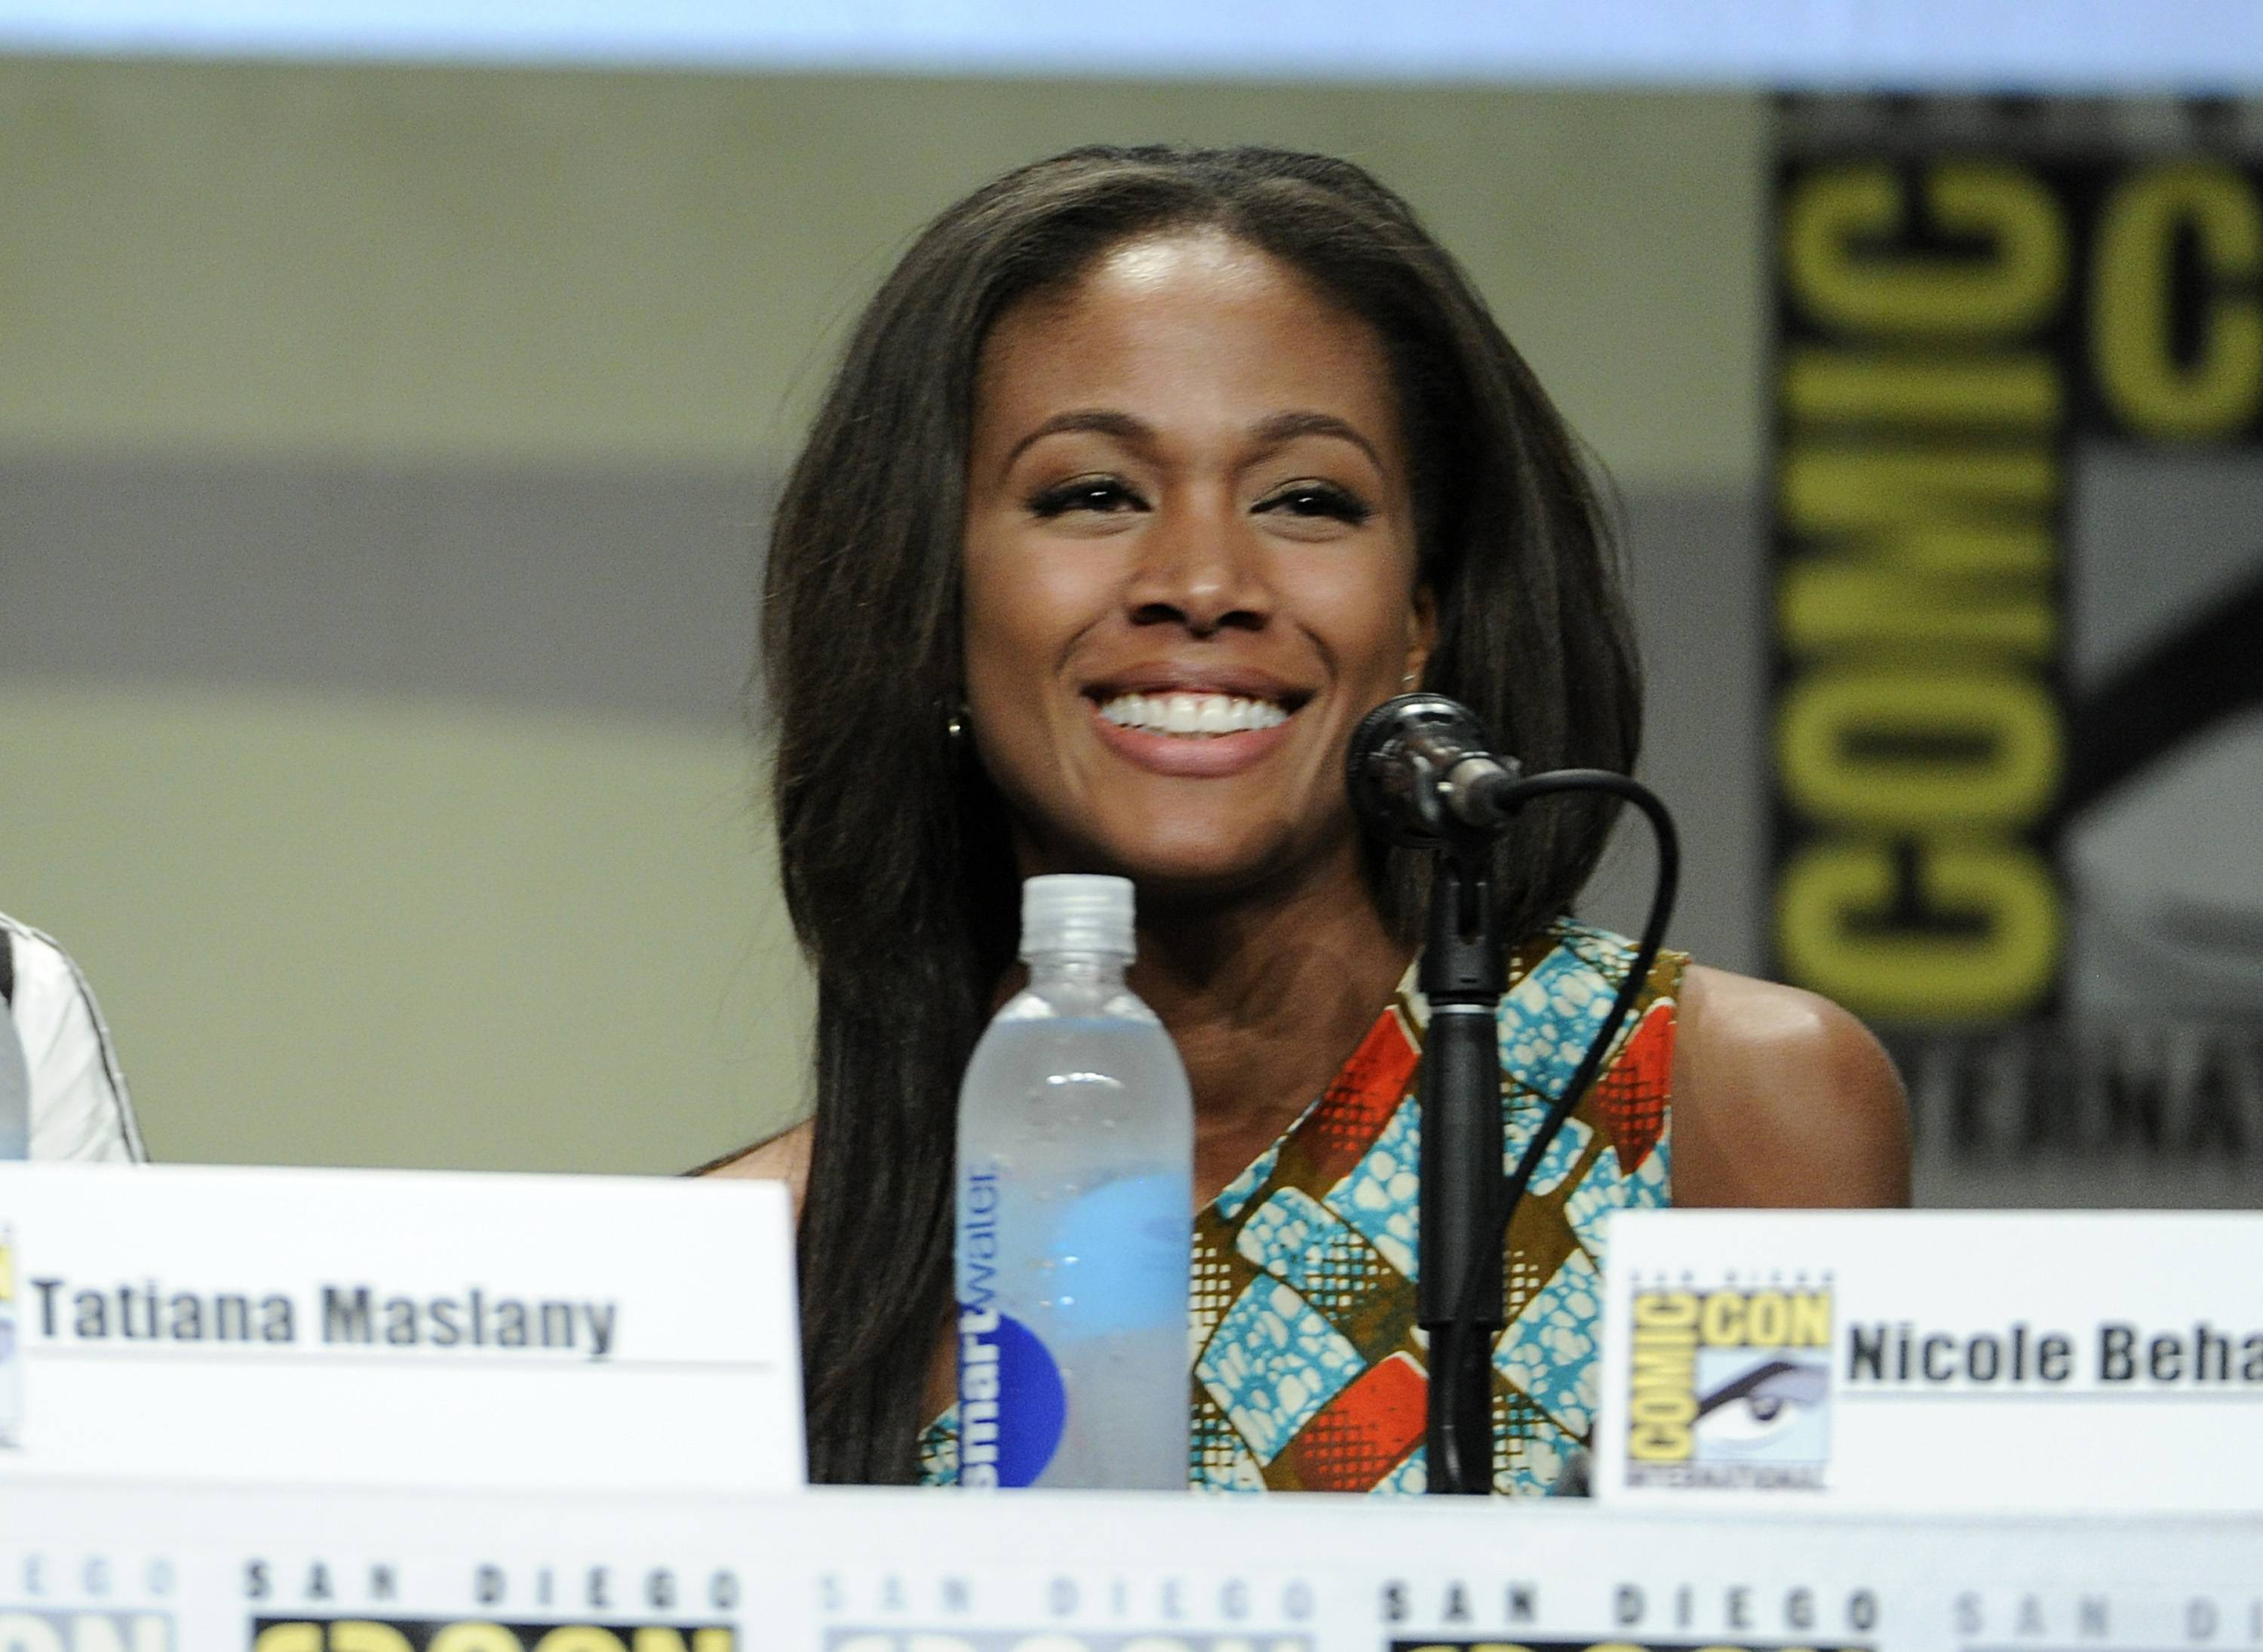 Nicole Beharie attends an Entertainment Weekly panel on Day 3 of Comic-Con International on Saturday.